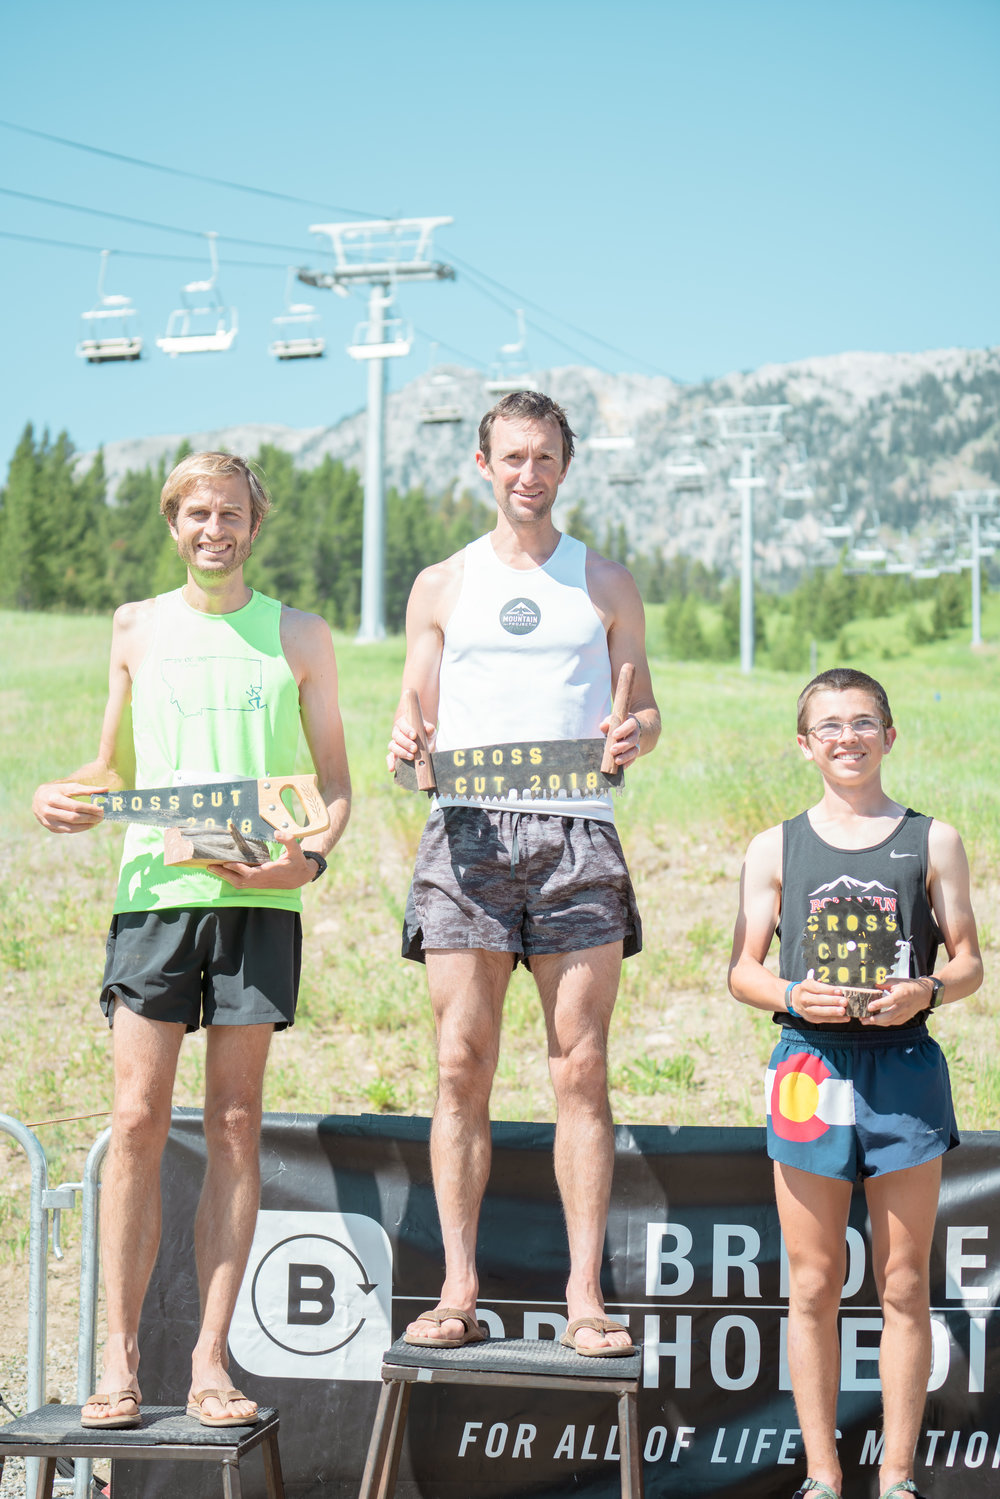 Runners getting their reward at Bozeman Running Co. racing of Crosscuts at Bridger Bowl just north of Bozeman, Montana. Includes the Mountain Project's Mike Wolfe.